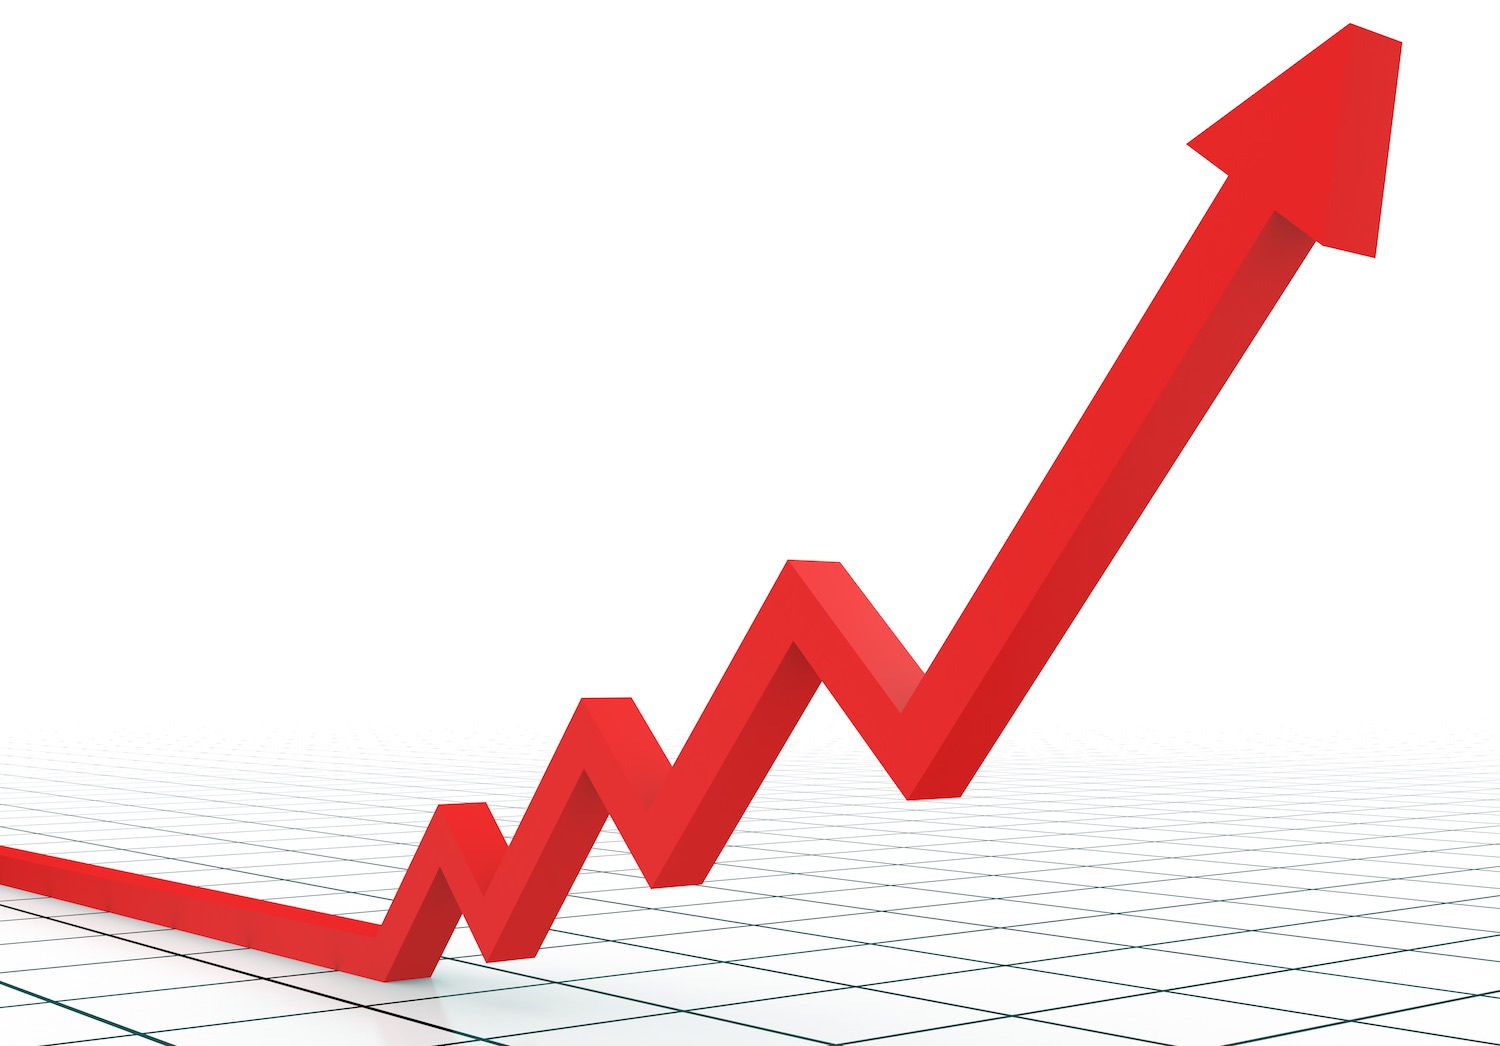 Line graph showing the percentage of change in a value